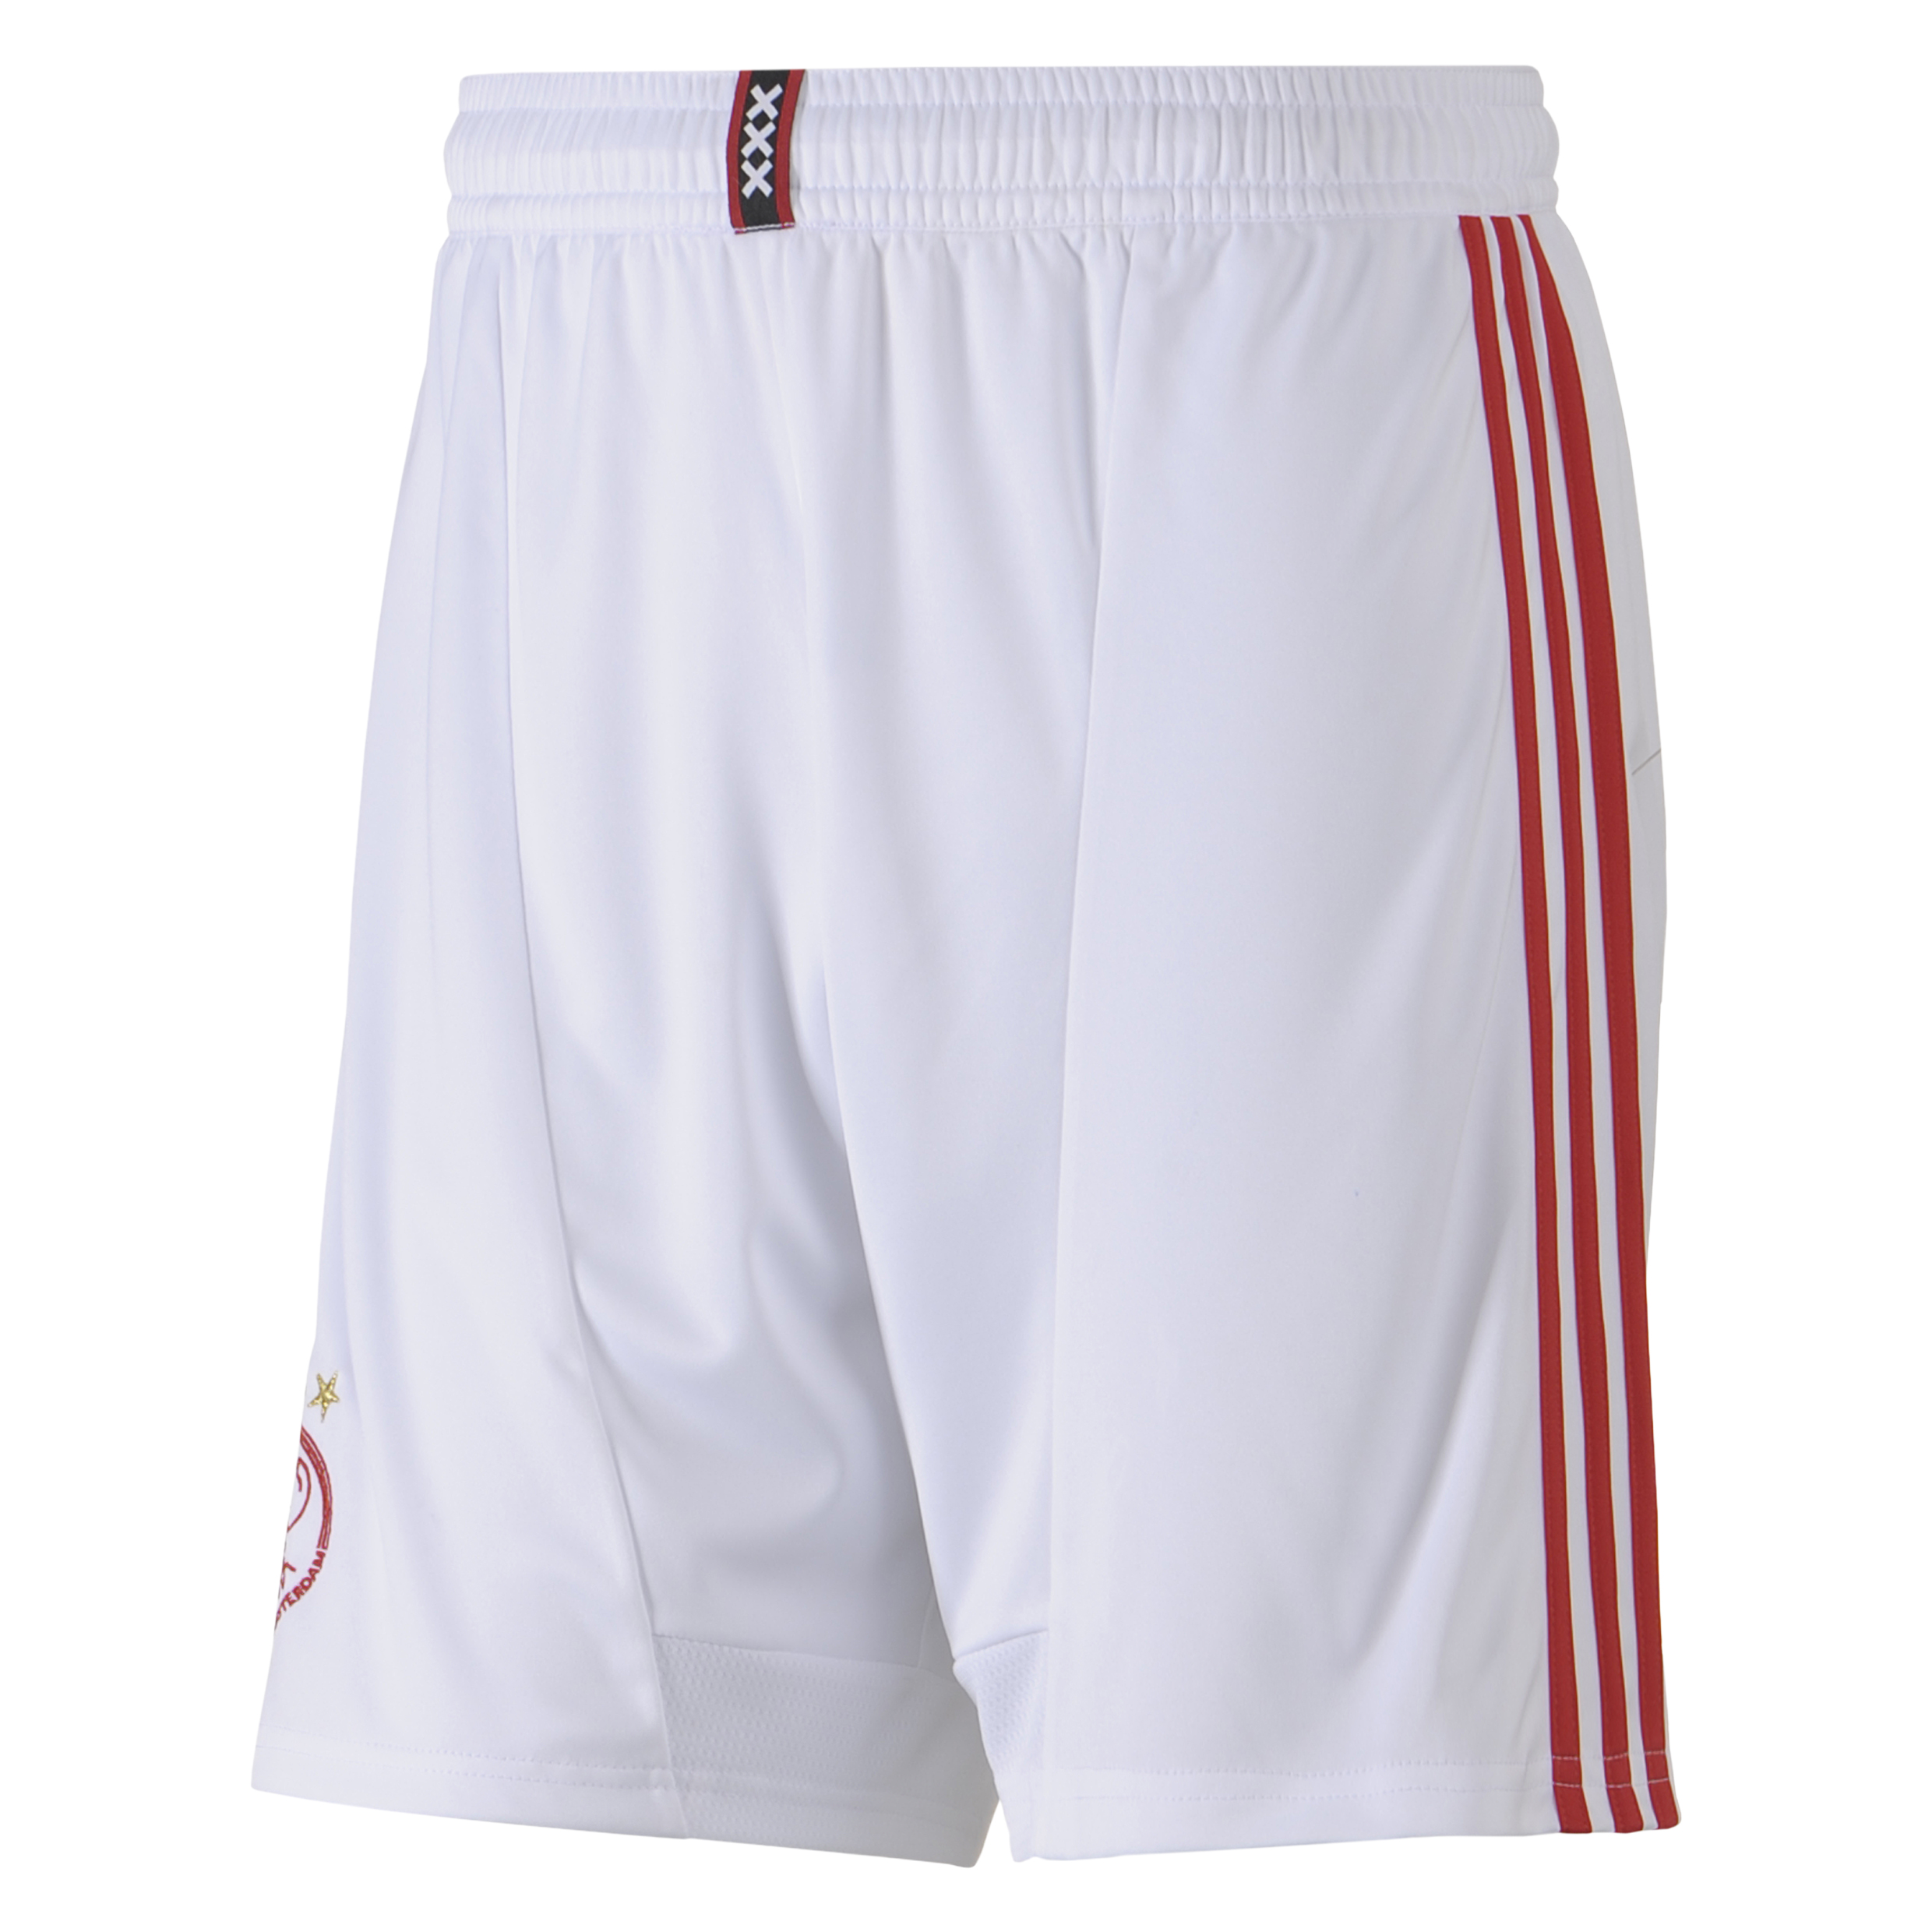 Ajax Home Short 2012/13